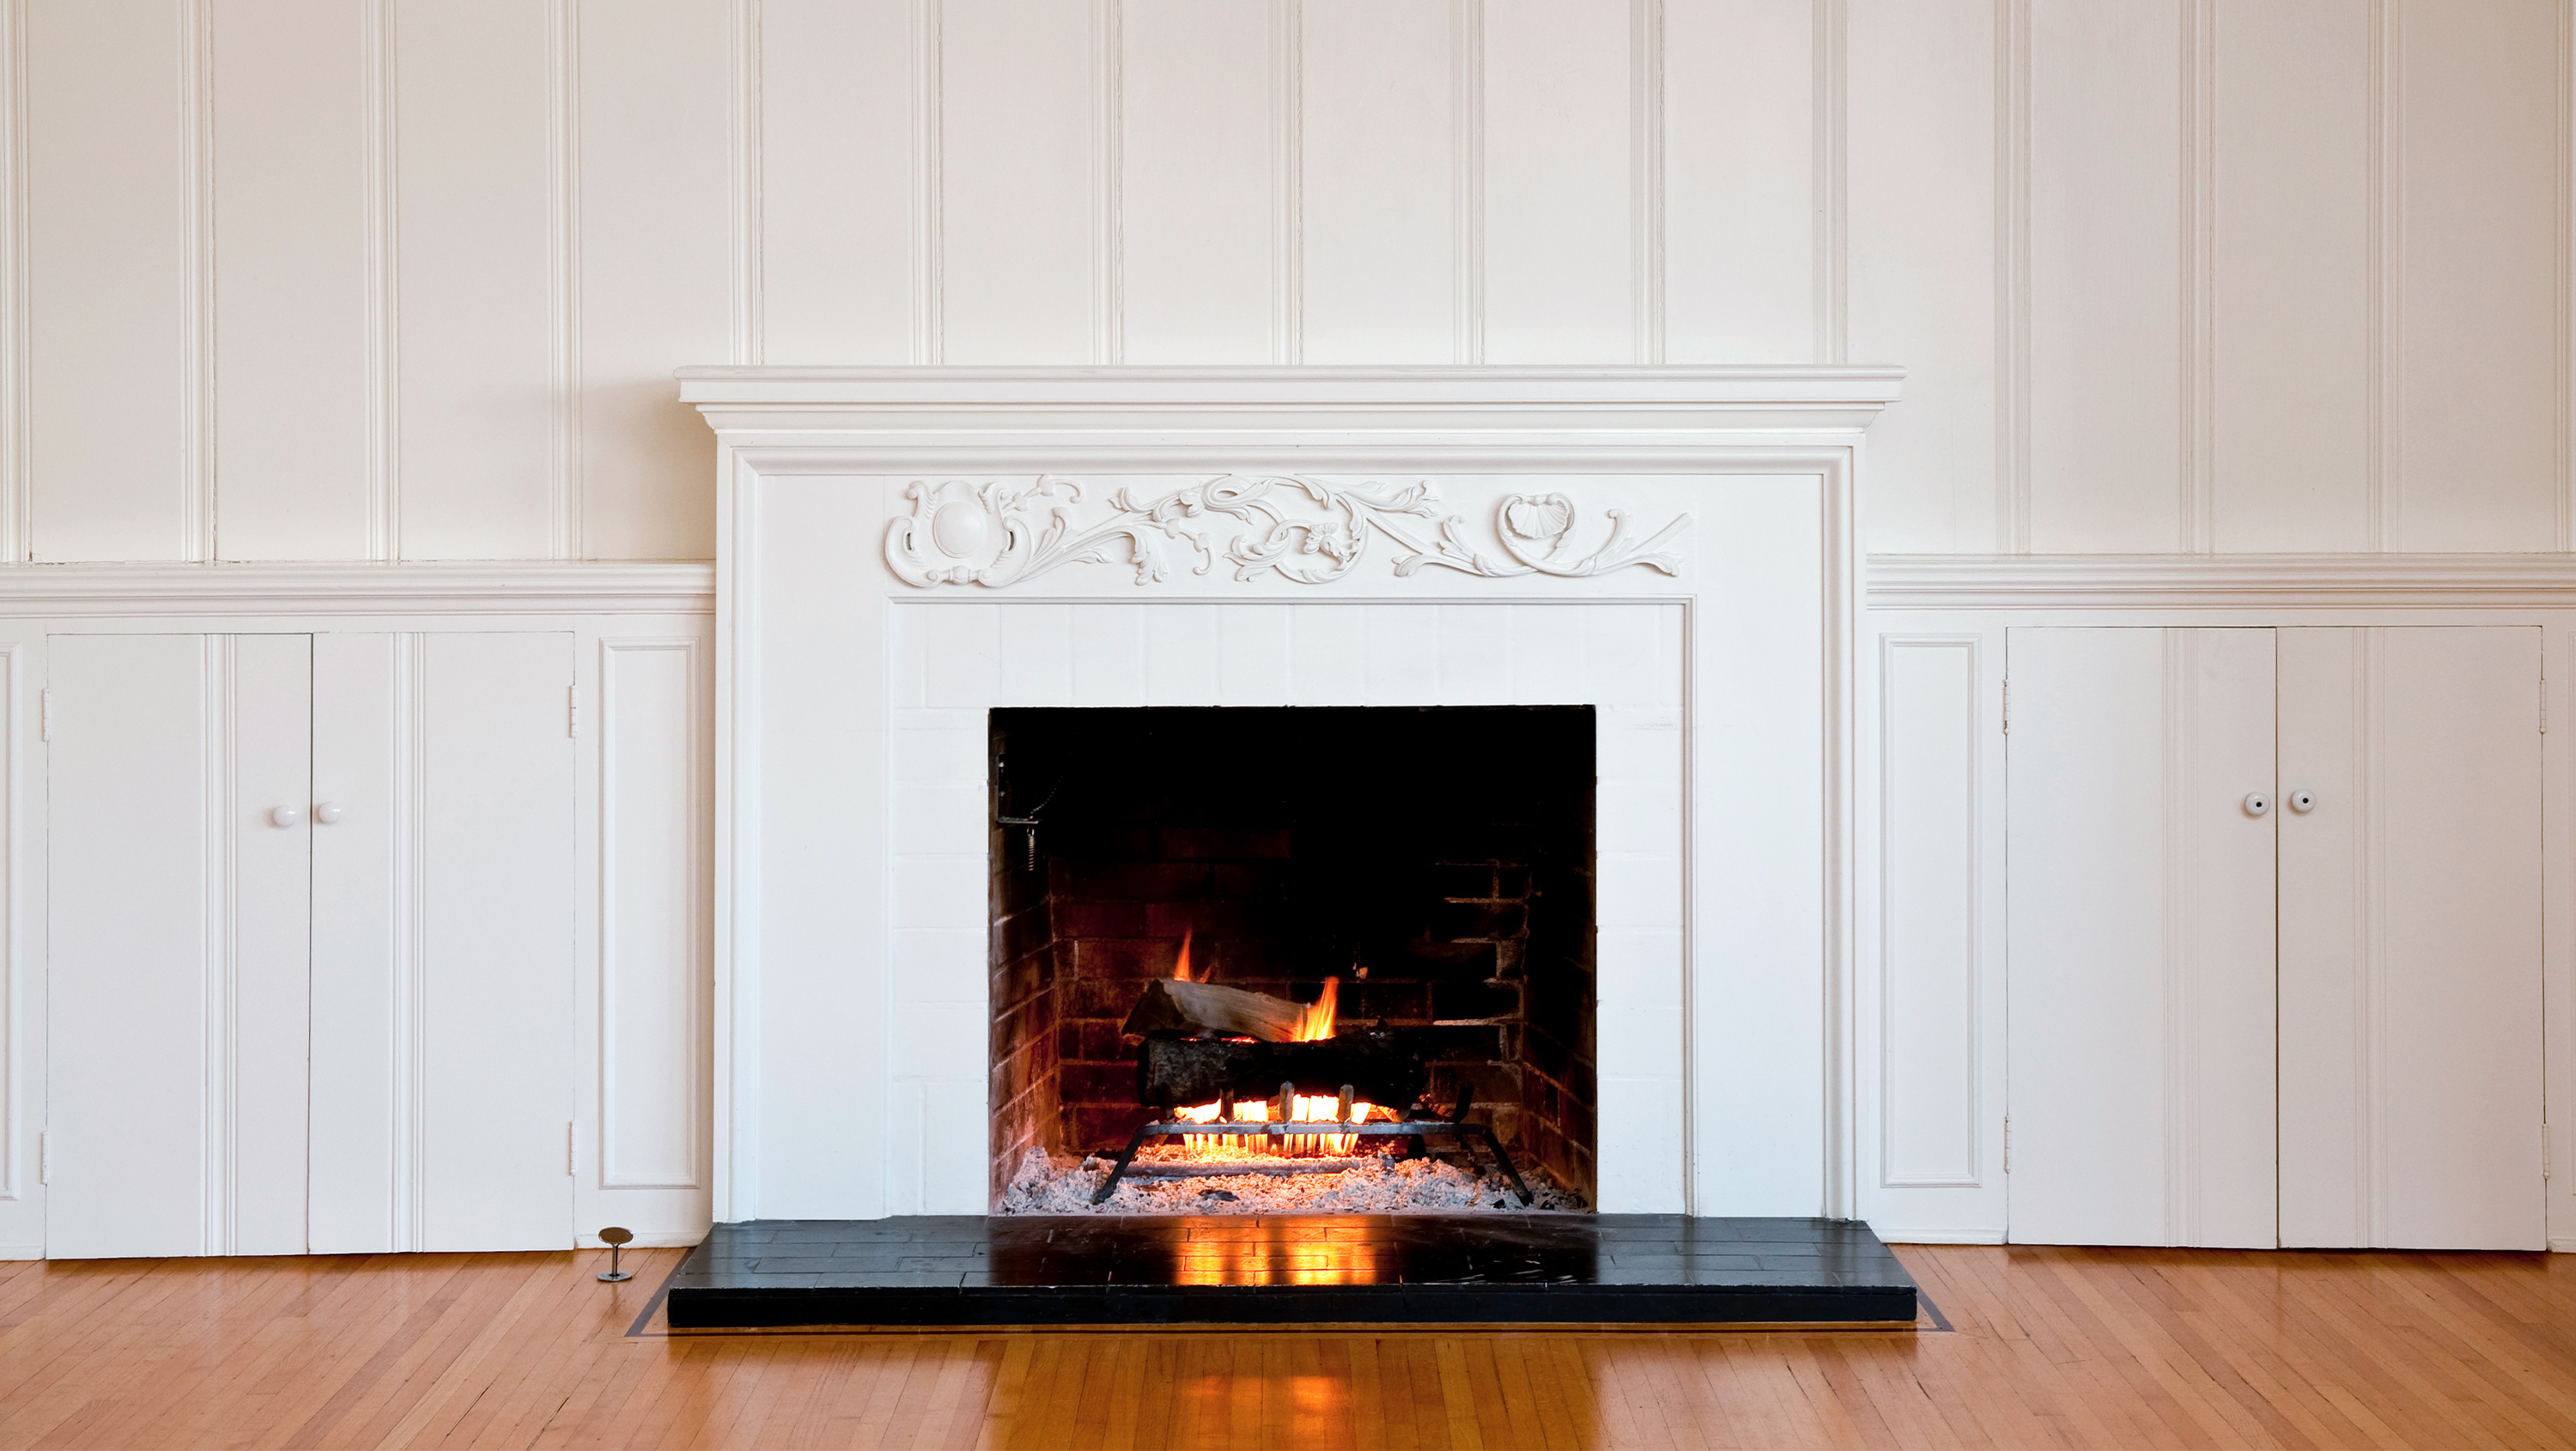 How to clean a fireplace - quick fireplace cleaning tips